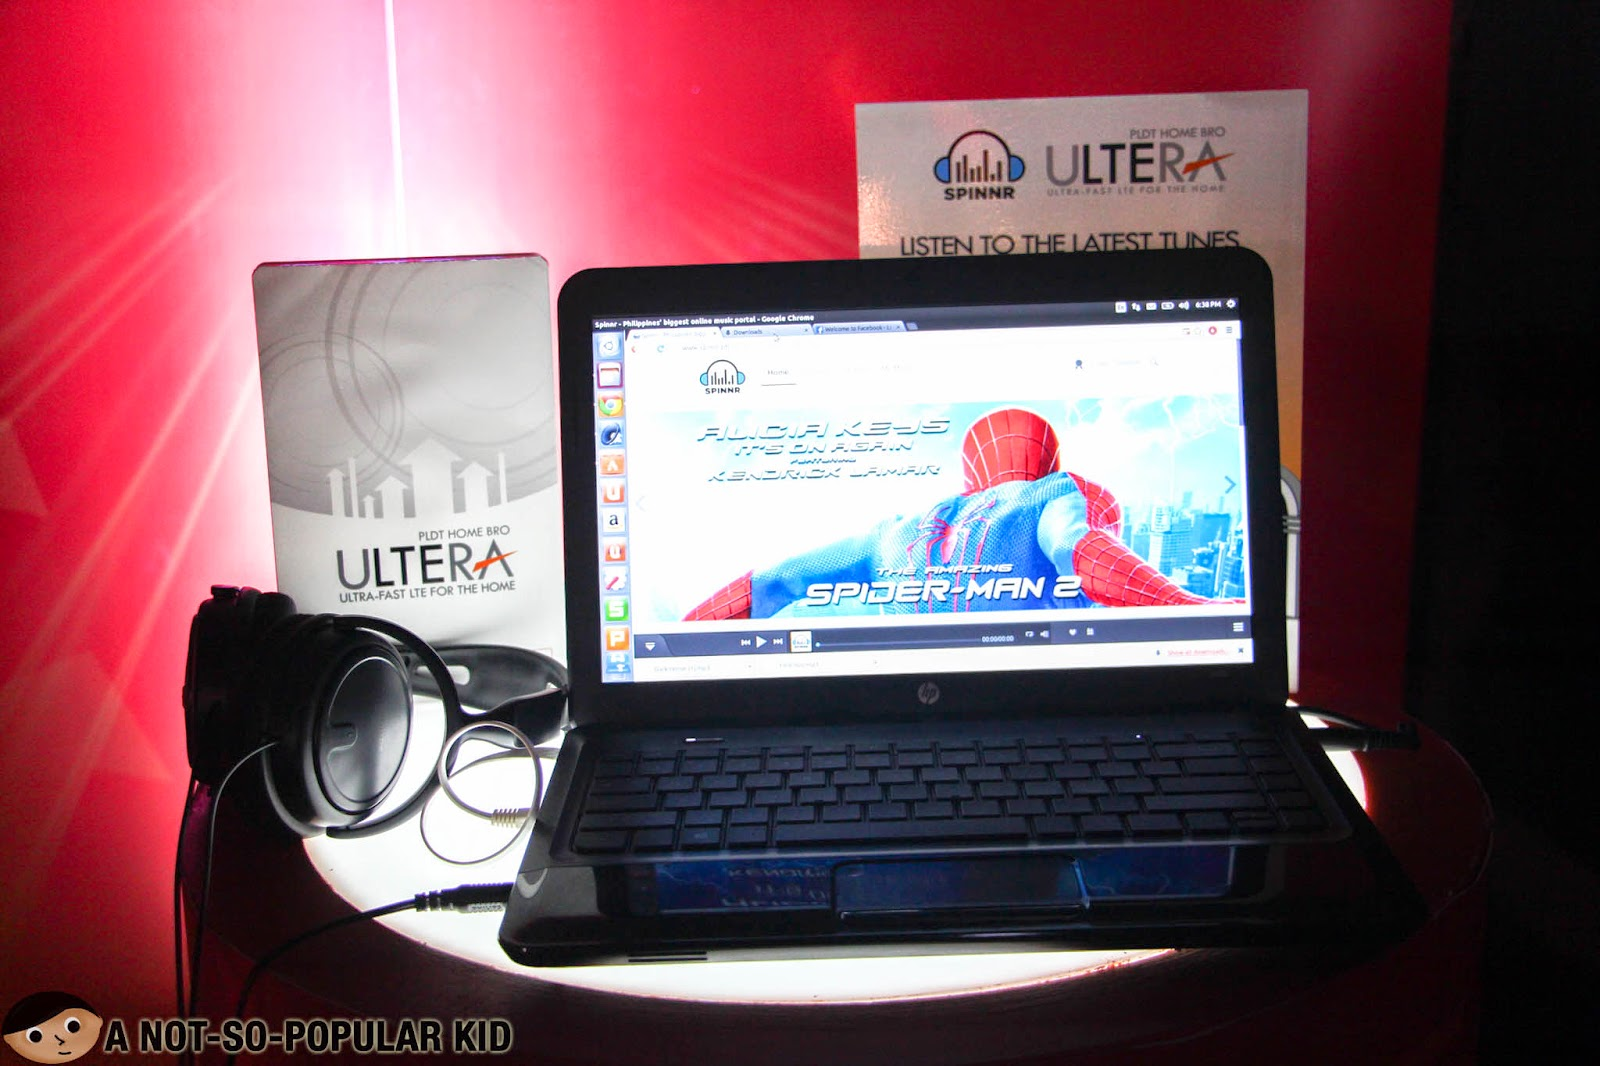 SPINNR and Ultera of PLDT